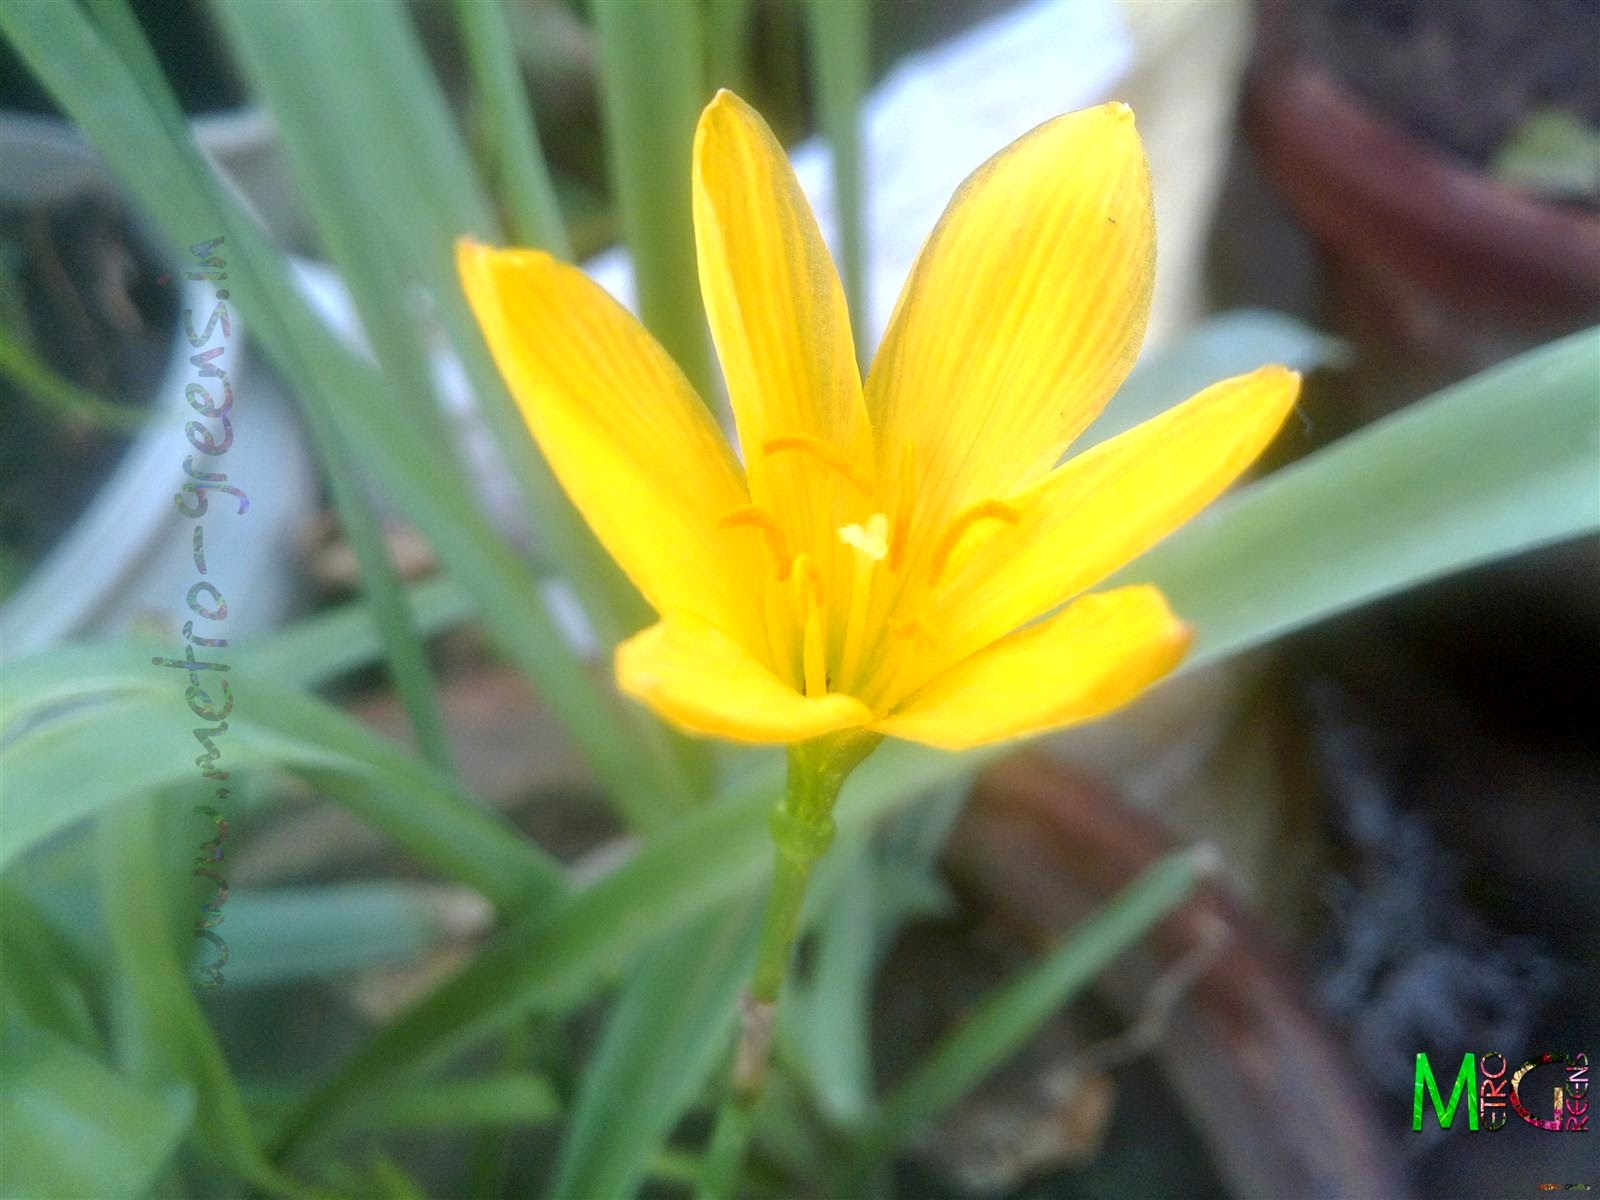 Metro Greens: A blooming yellow rain lily